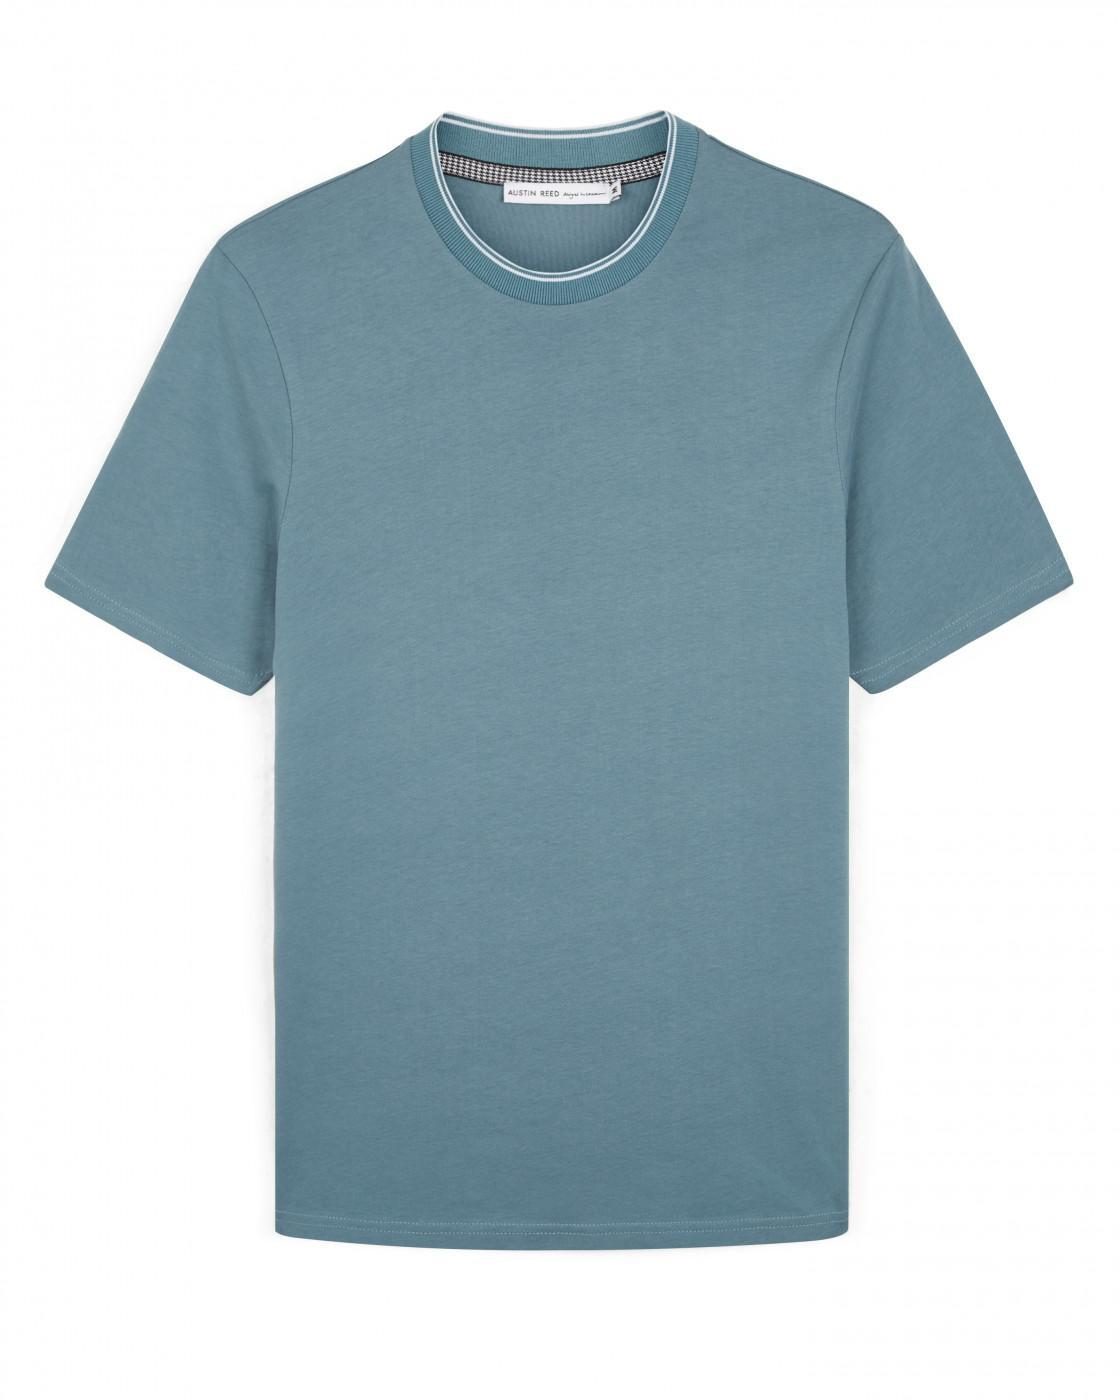 Crew Neck Plain T Shirt By Austin Reed Thread Com